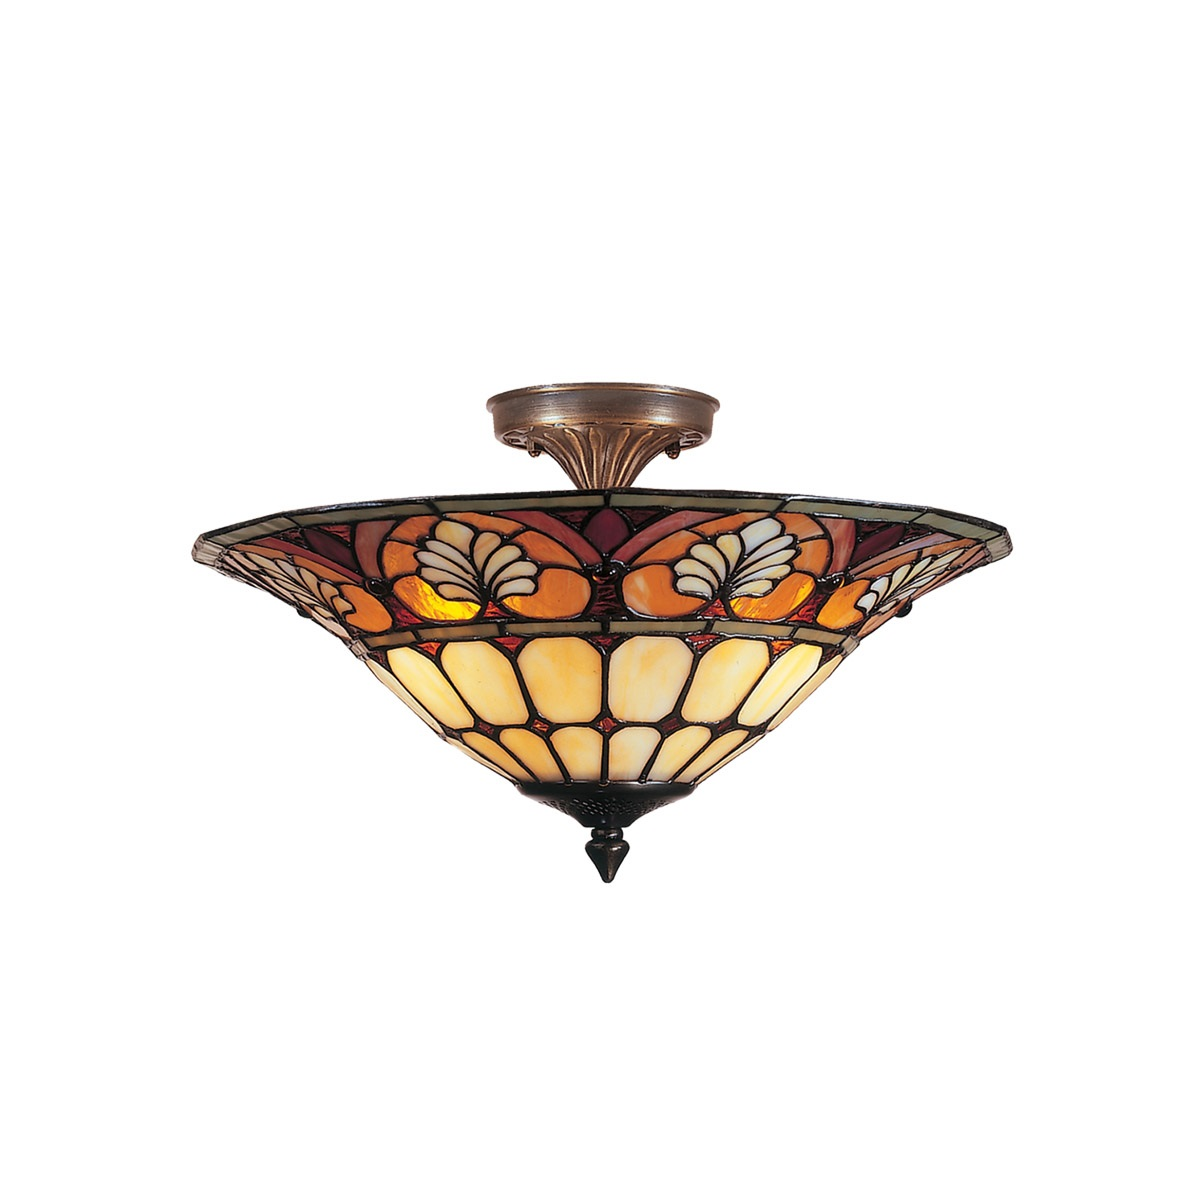 Dale Tiffany Dylan Tifffany Flush Mount 3 Light Ceiling